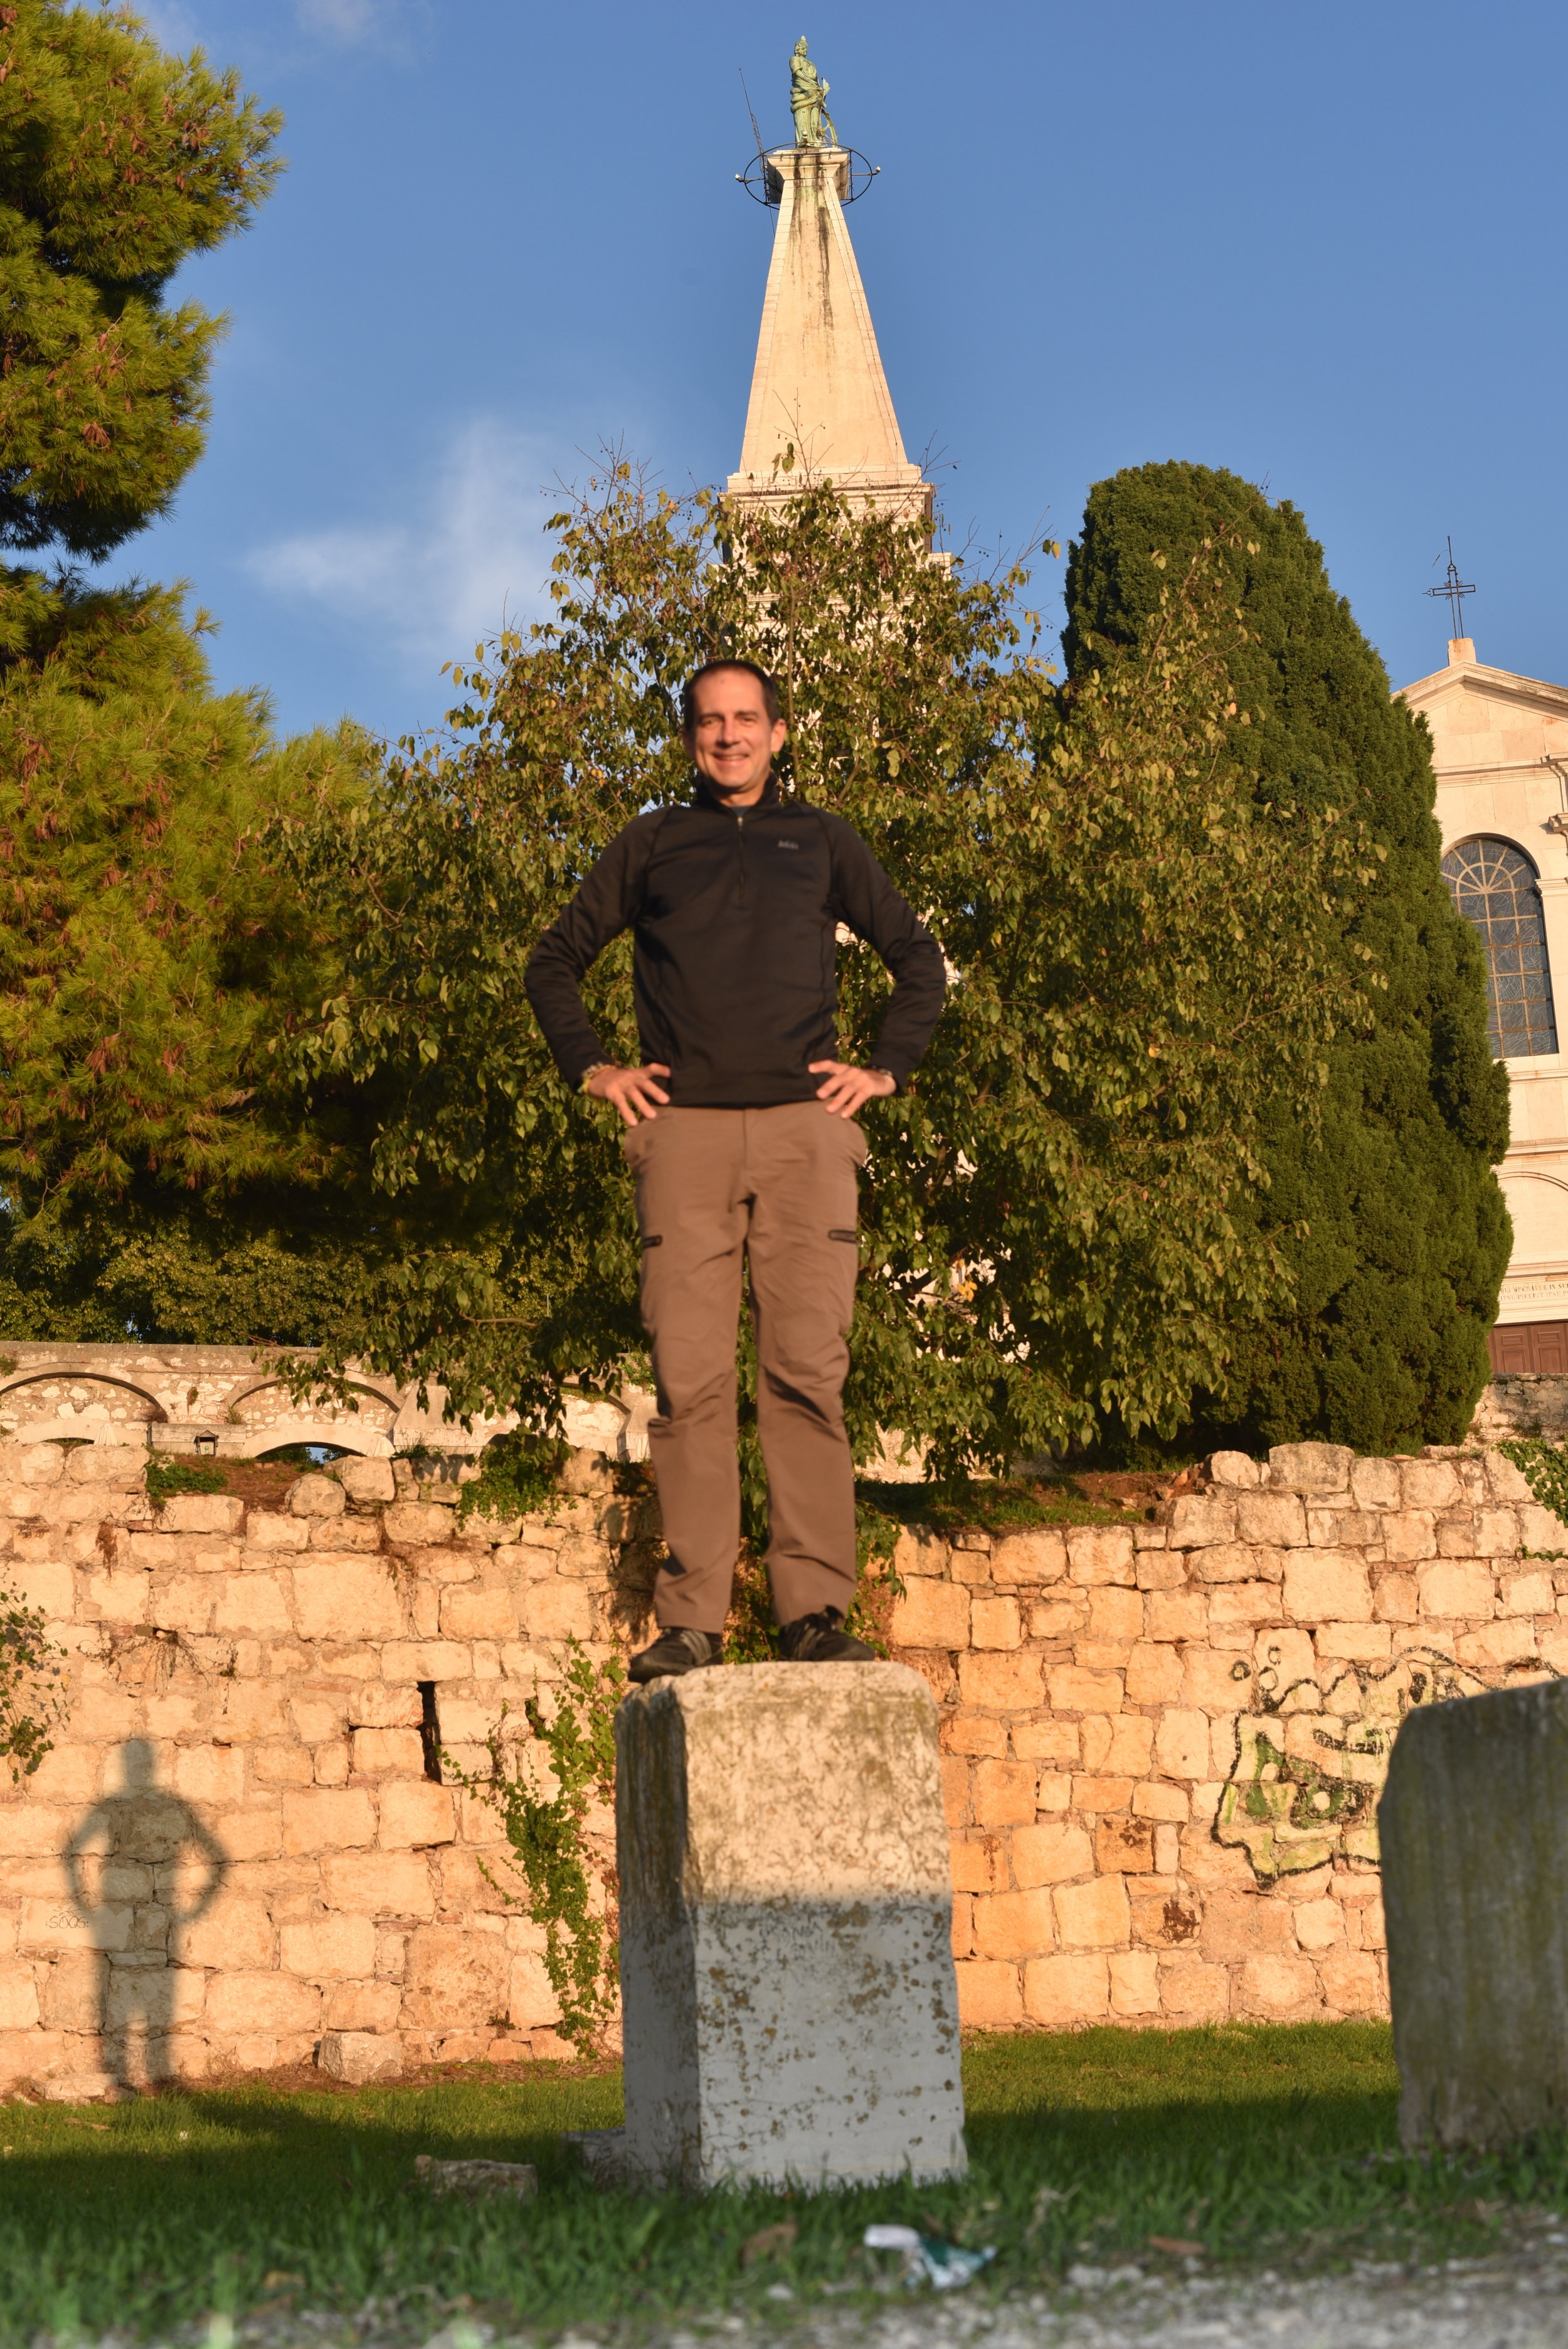 Goofing around with selfies at the Church of St. Euphemia in Rovinj.